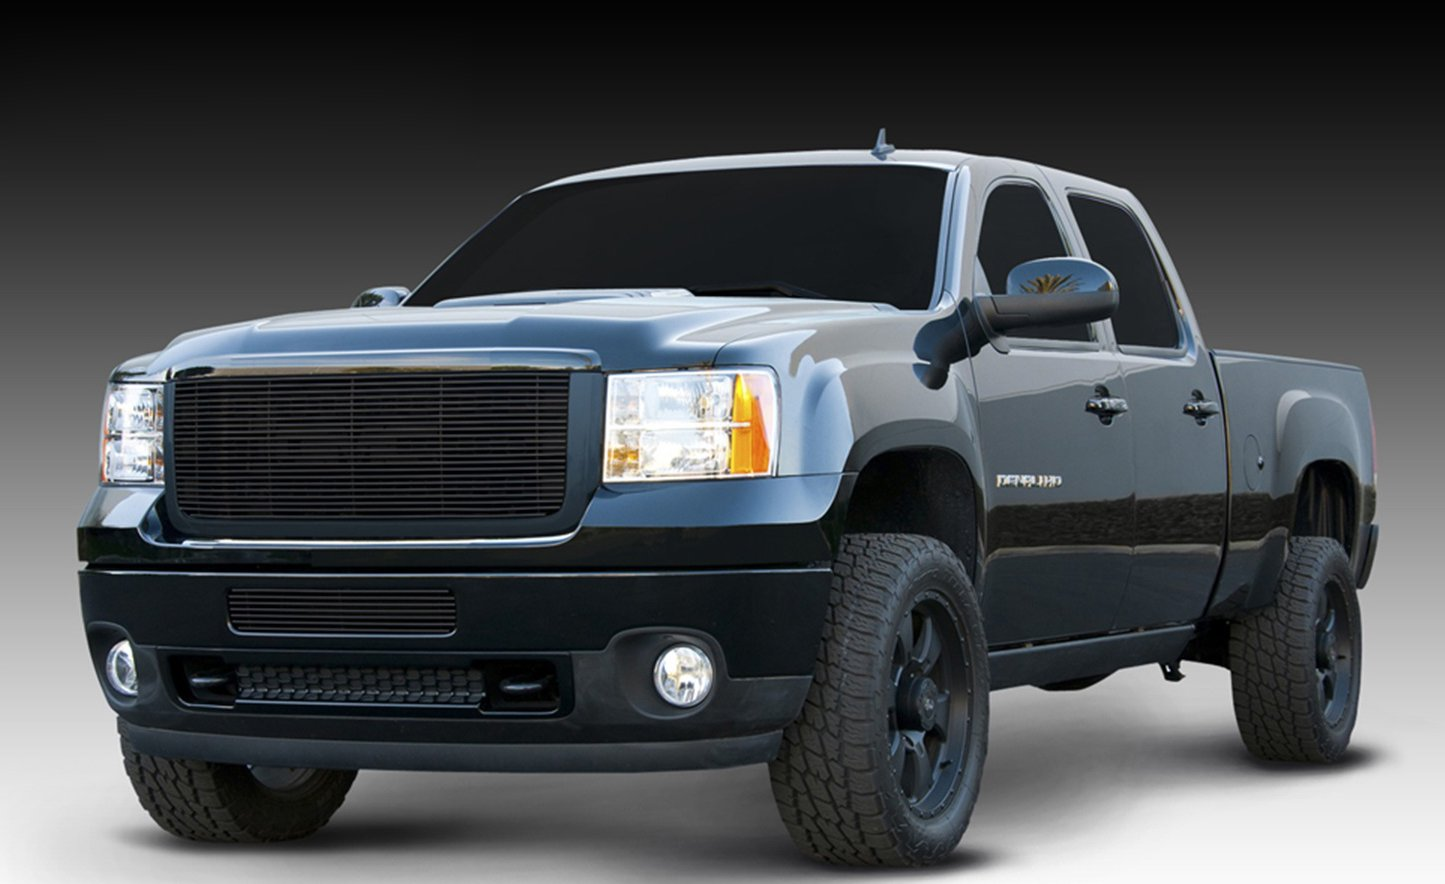 T-Rex Grilles 21209B Horizontal Aluminum Black Finish Billet Grille Insert and Overlay for GMC Sierra 2500HD//3500